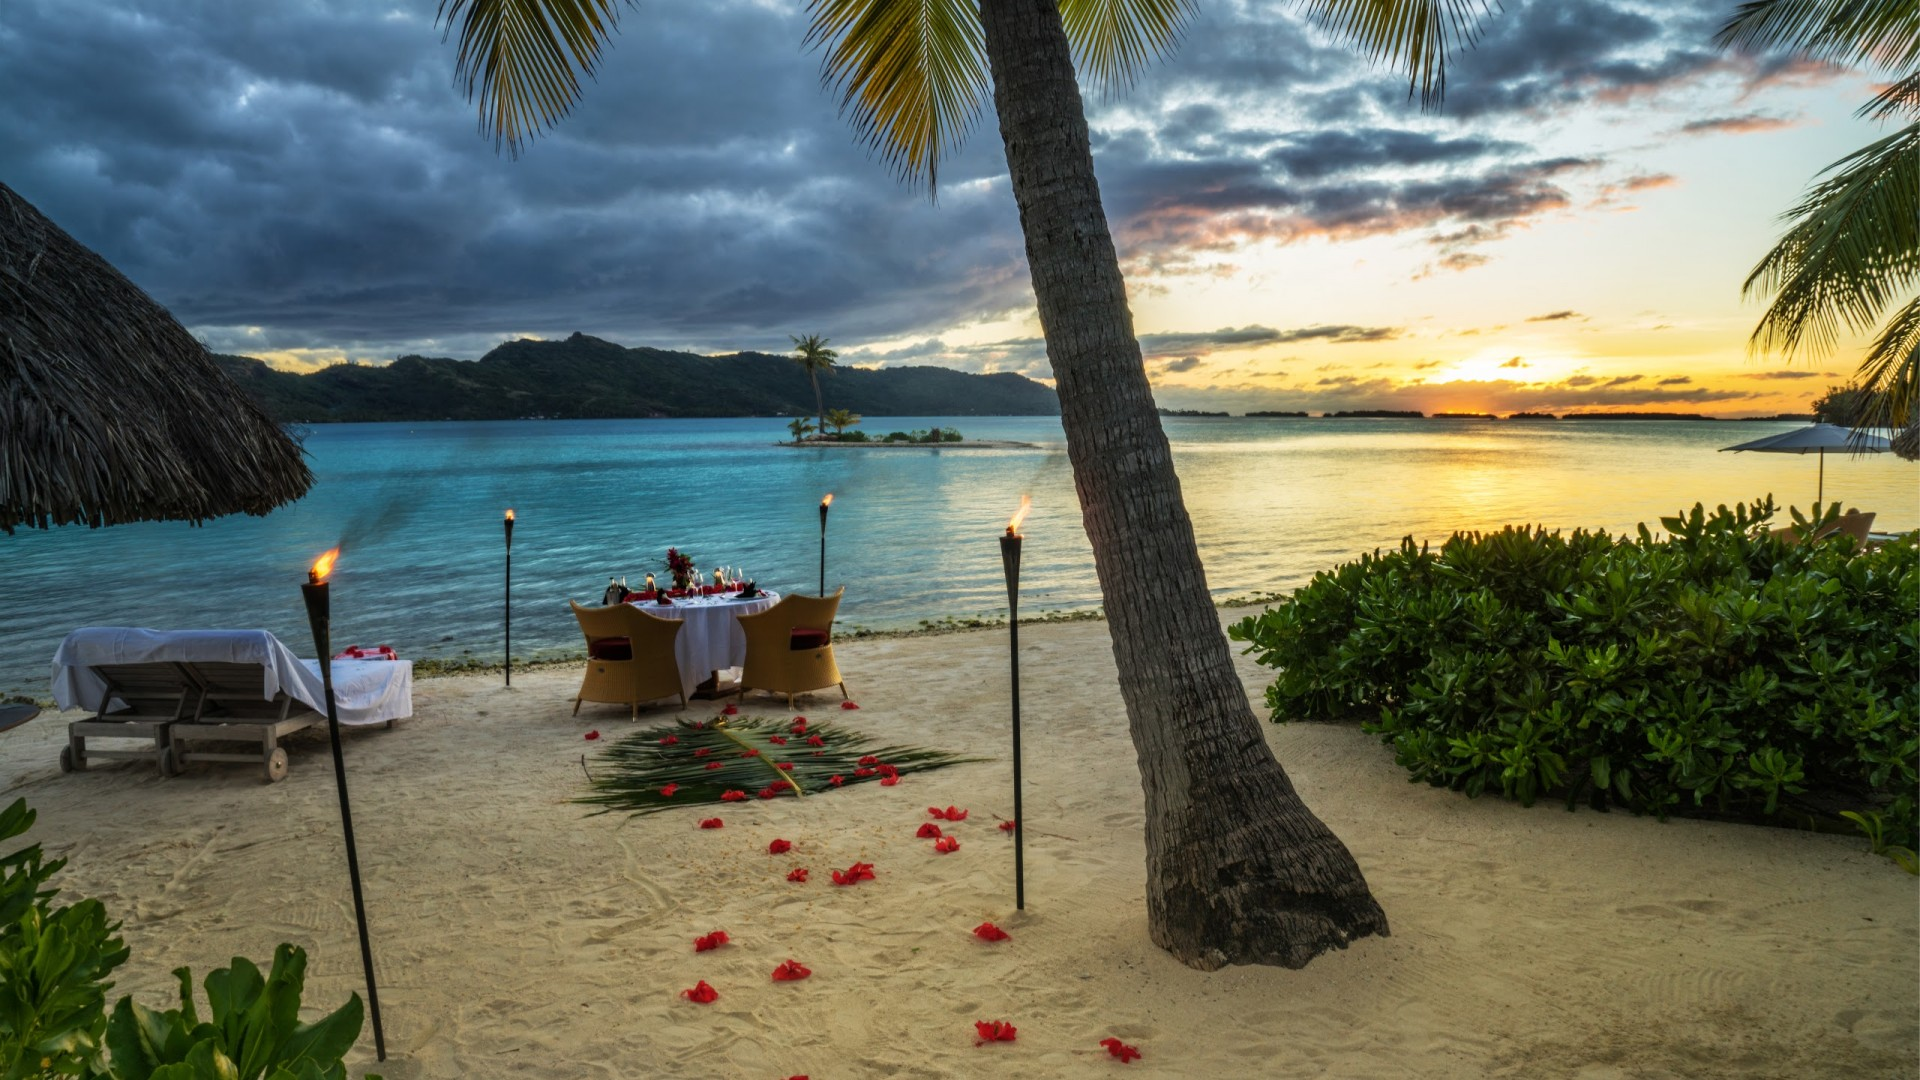 Bora Bora, 4k, HD wallpaper, French Polynesia, ocean, dinner, sunset, fire, torch, palm trees, beach, vacation, rest, travel, booking, palm trees,  (horizontal)